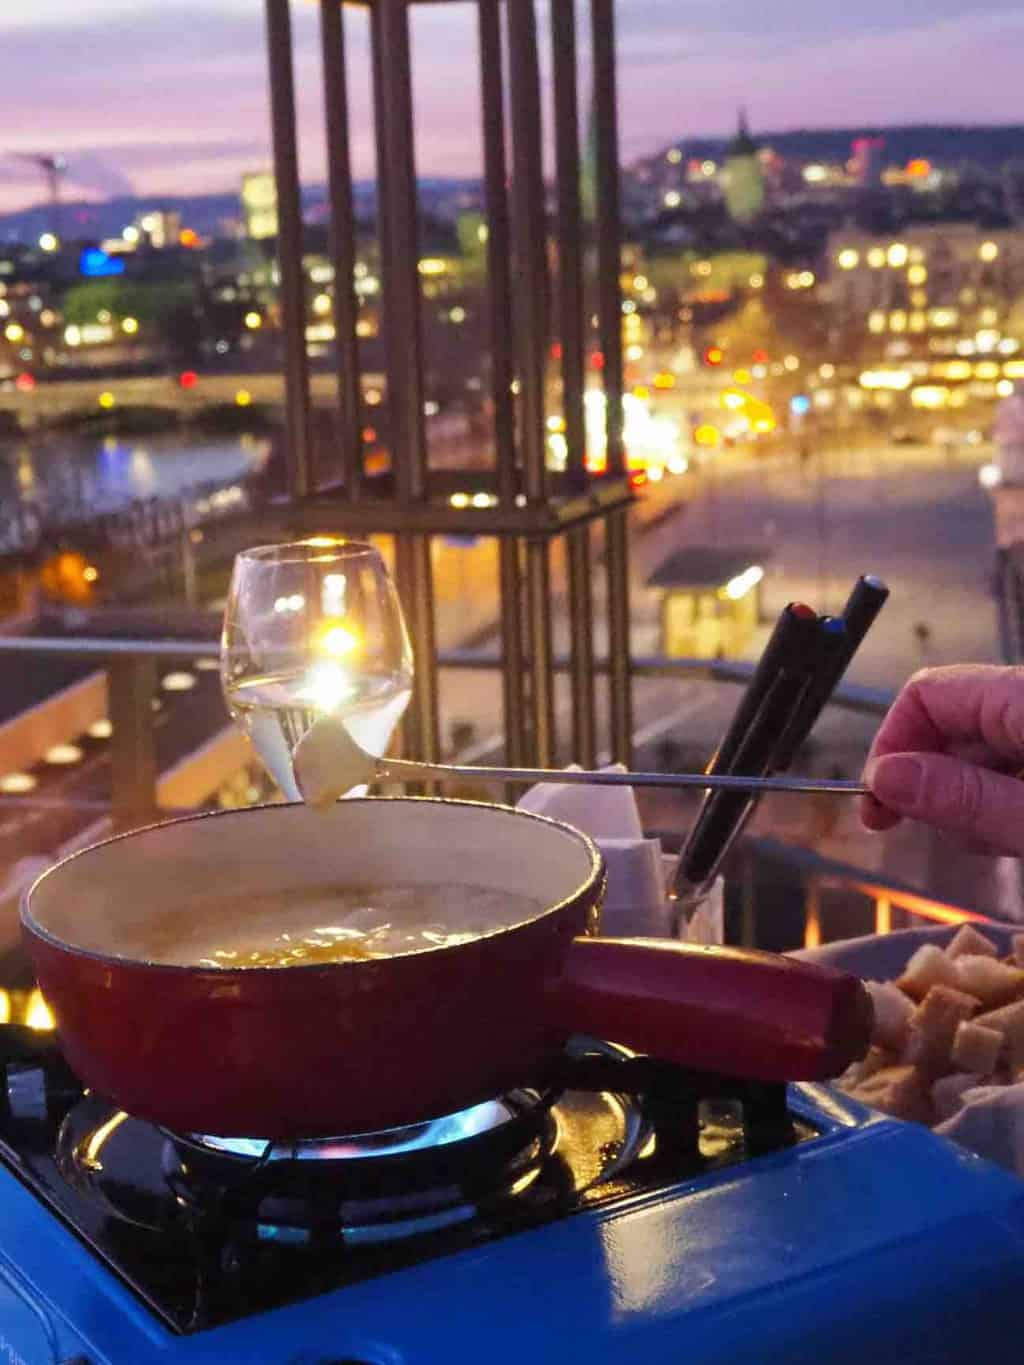 Keeping The Cold Out In Style With Nobis & fondue